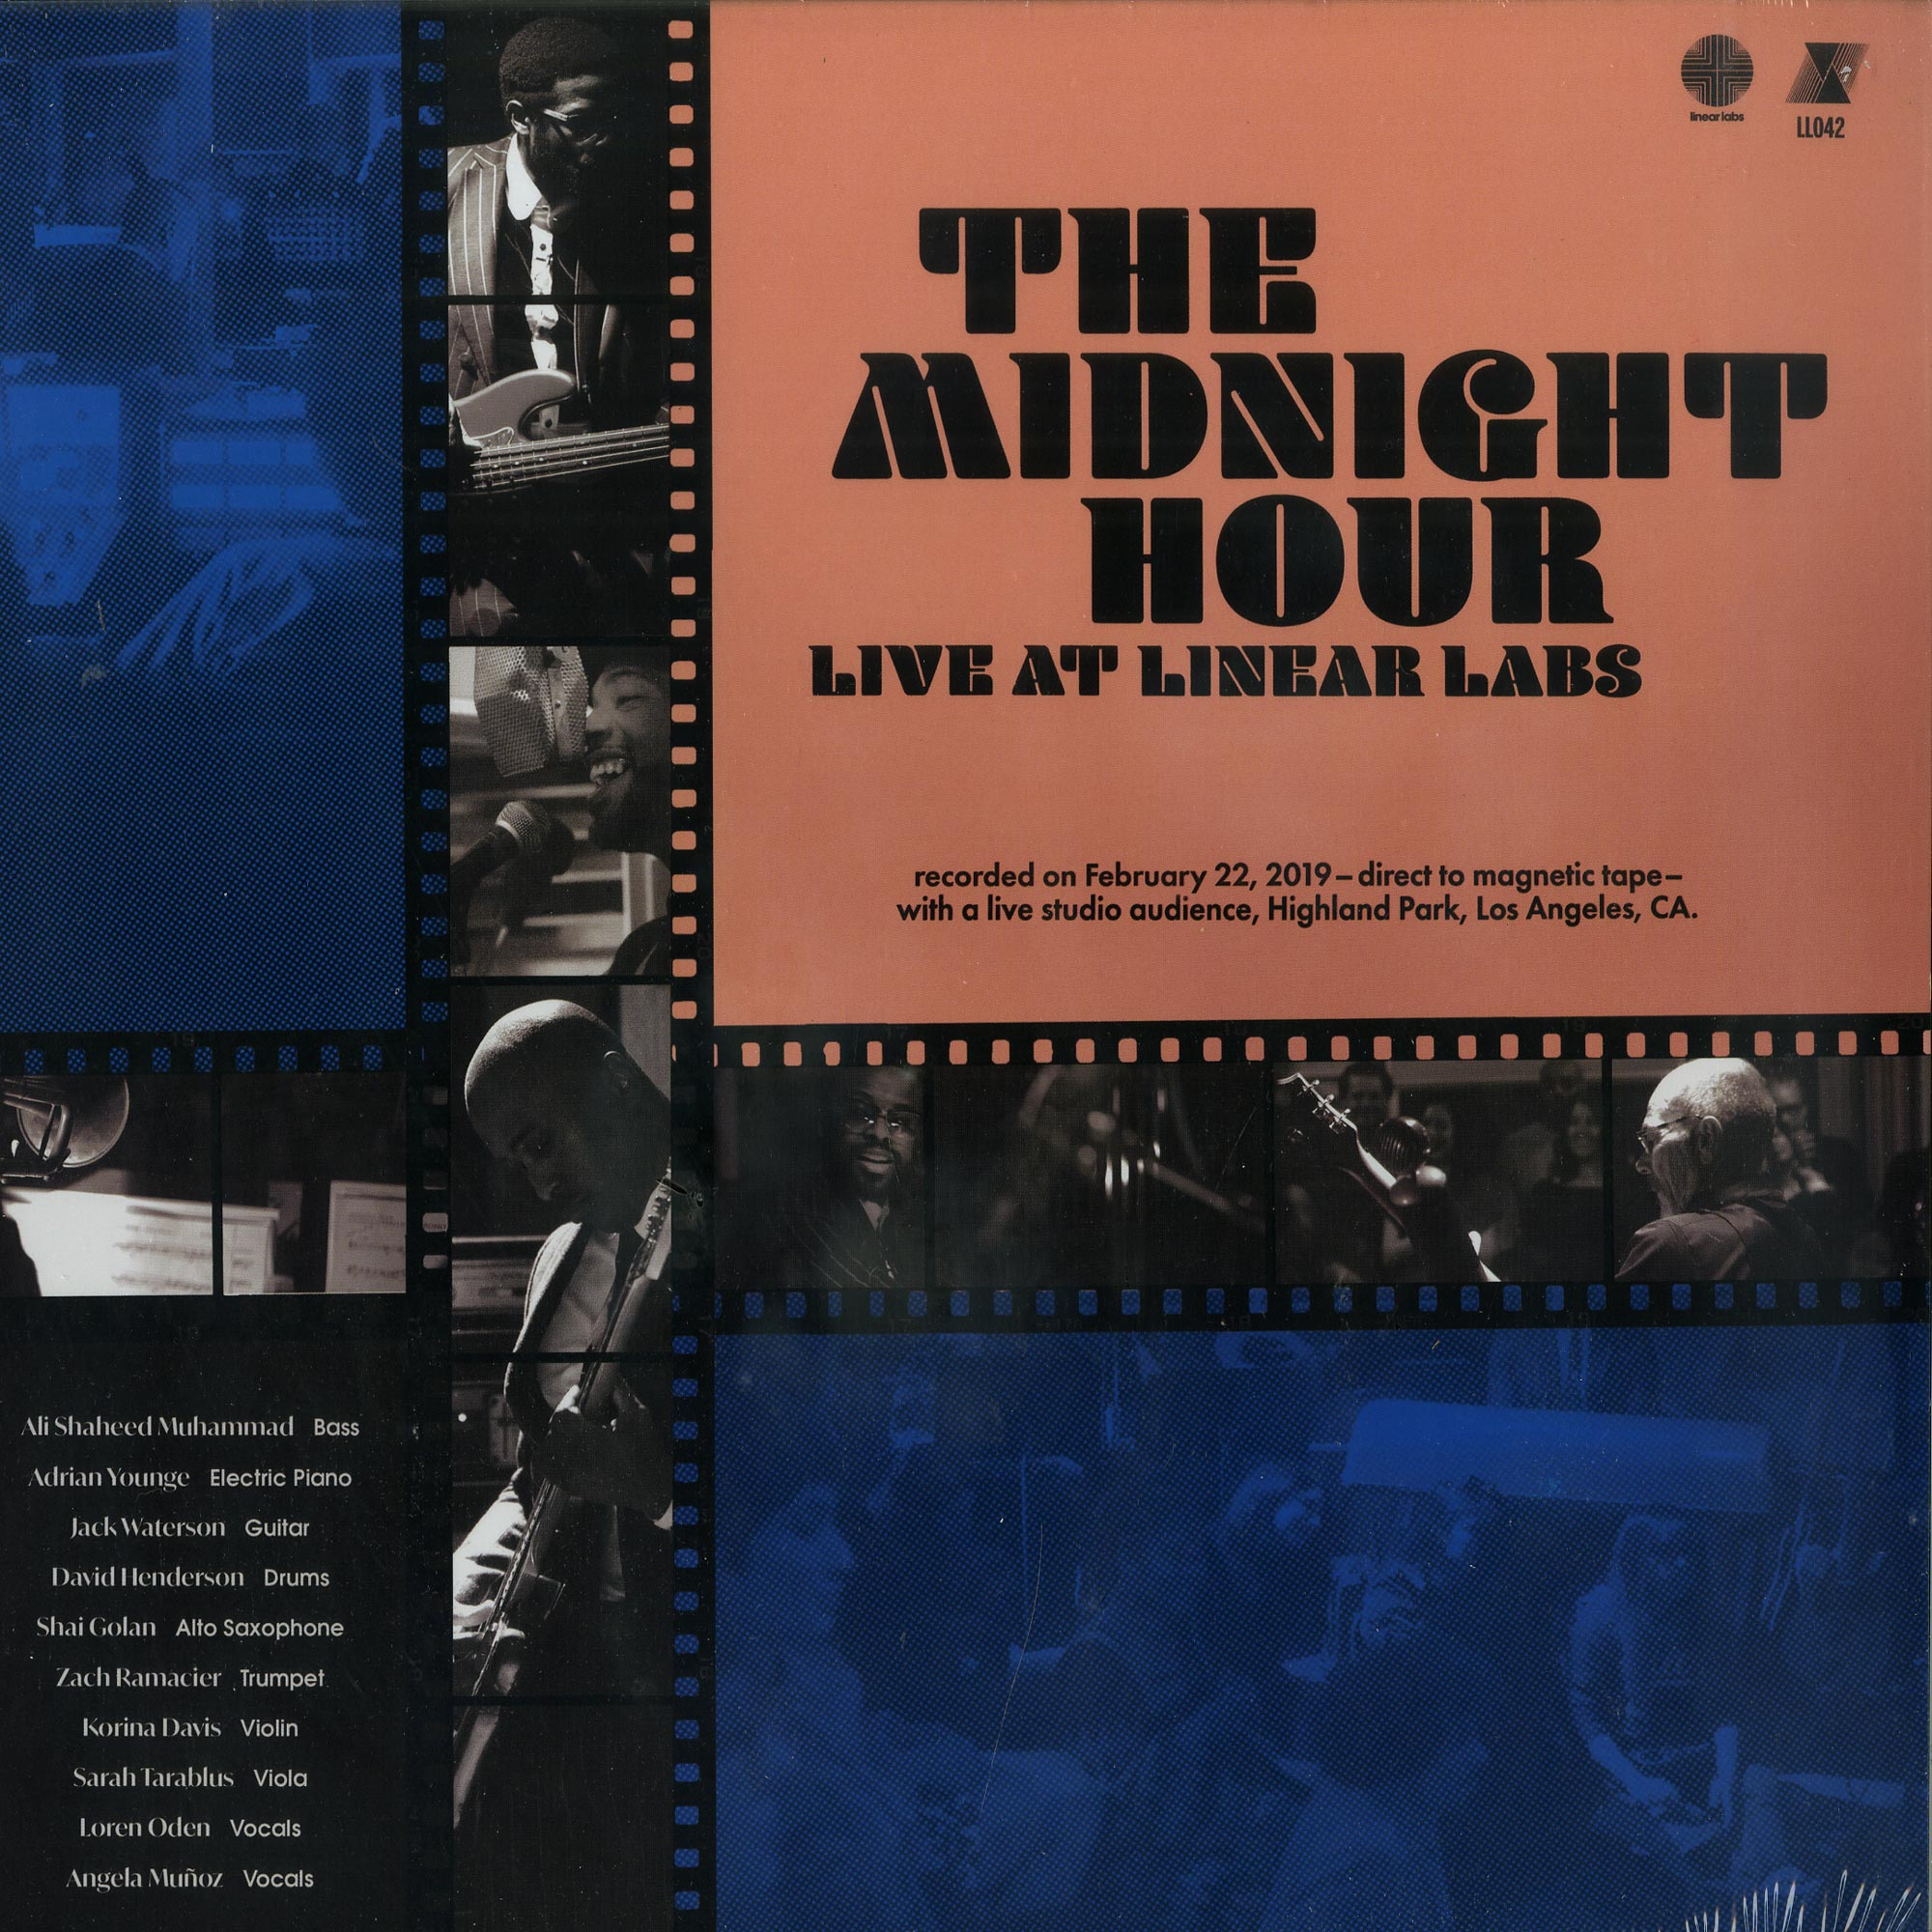 Adrian Younge & Ali Shaheed Muhammad - THE MIDNIGHT HOUR LIVE AT LINEAR LABS